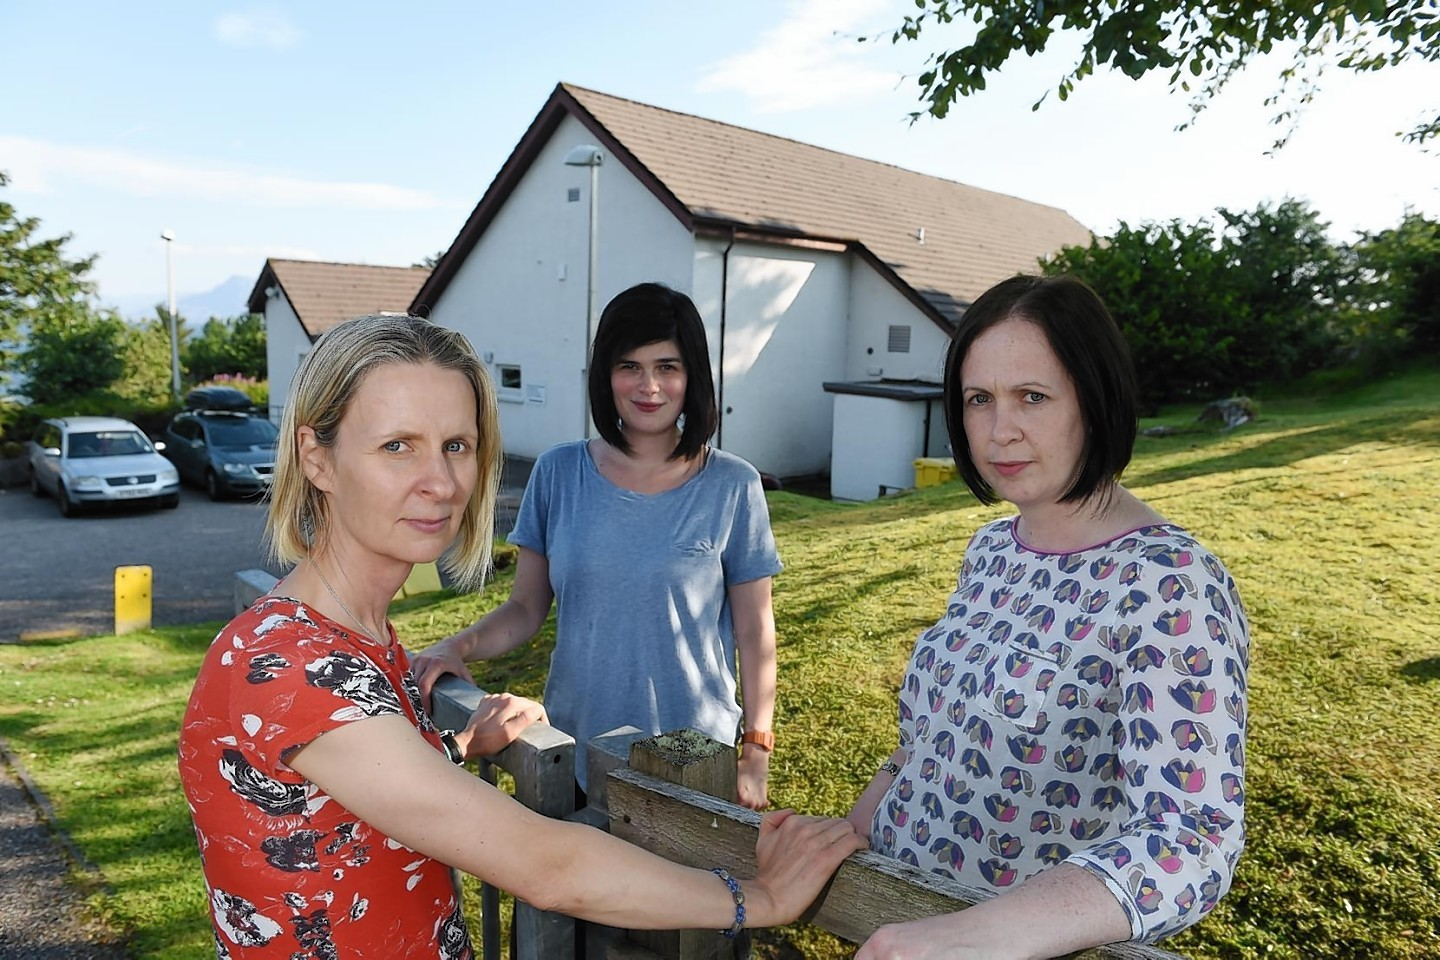 Fiona Hanson, Chairperson of the School Parent Council, Emma Micski, Secretary and Sarah Jane Campbell, Tresasurer, have raised their concerns over the school cuts